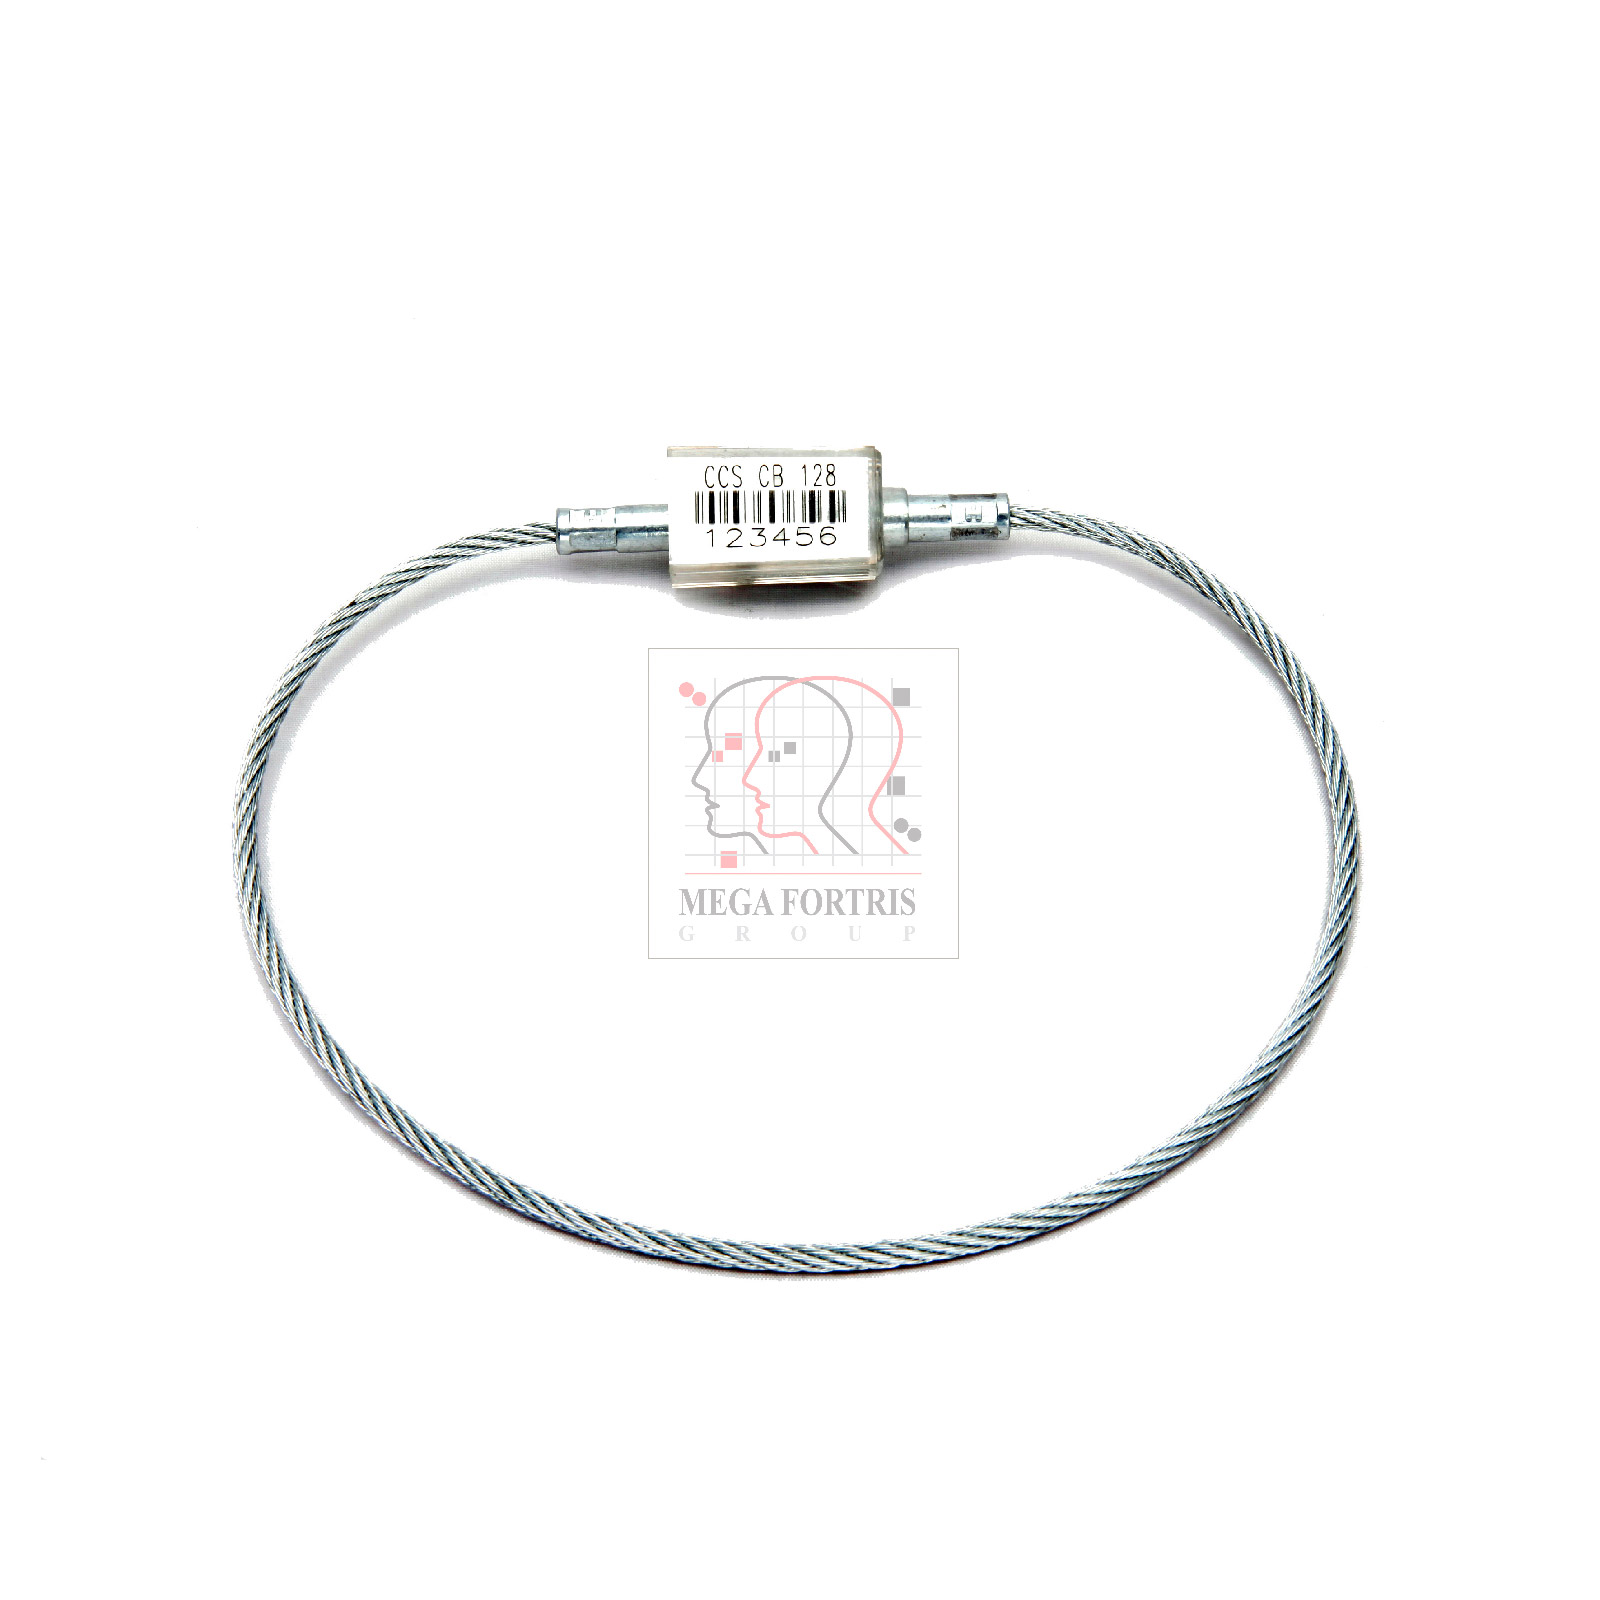 Carrier_Cable_Seal-(2)